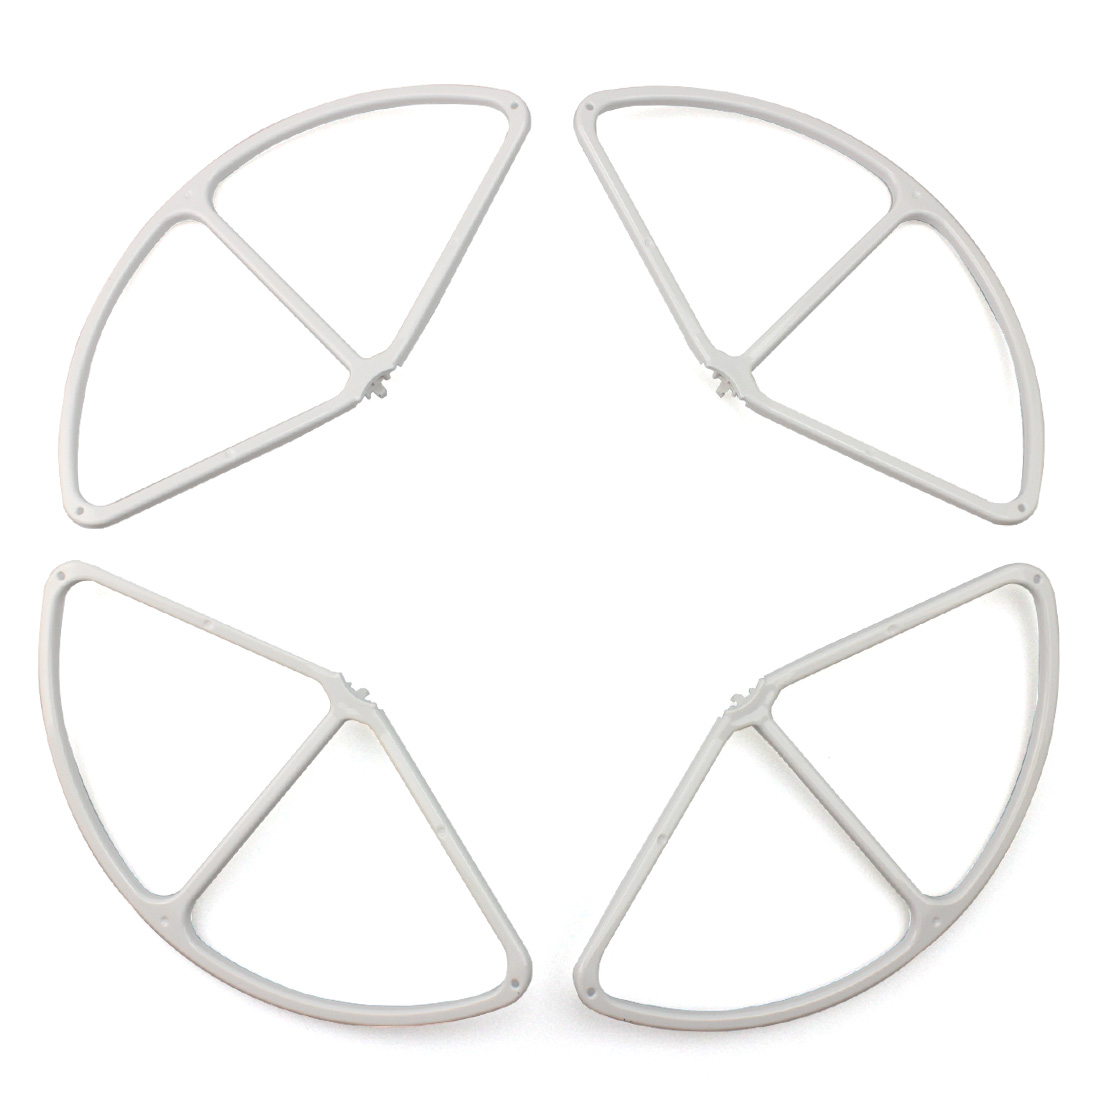 F17775 4x Quick Release Props Propeller Protector Guard Bumpers Shielding Ring for DJI Phantom 4 Drone Spare Parts